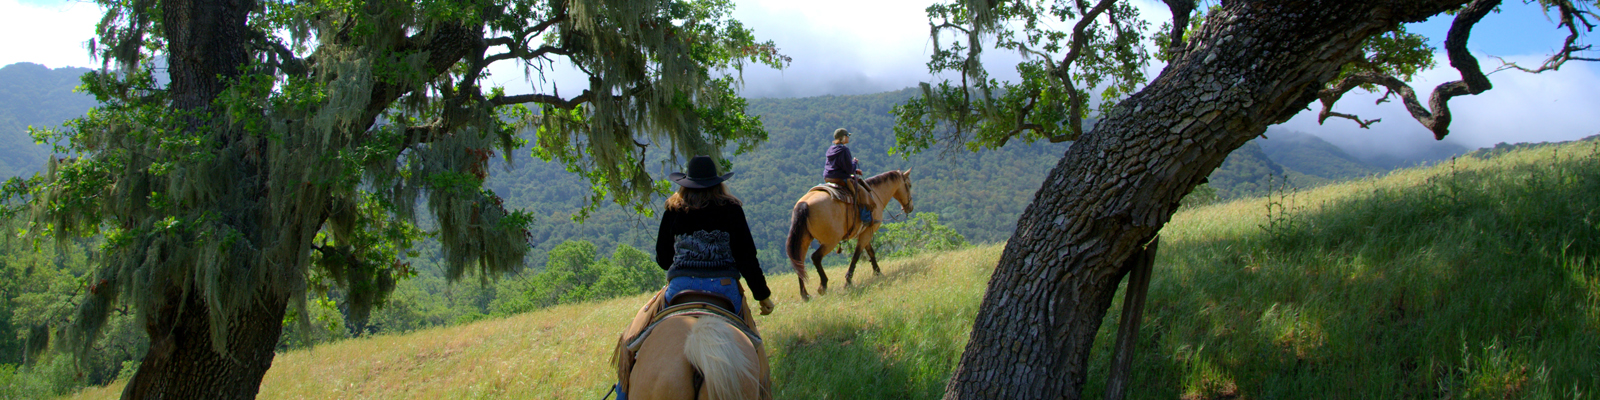 Horseback Riding at Alisal Dude Ranch